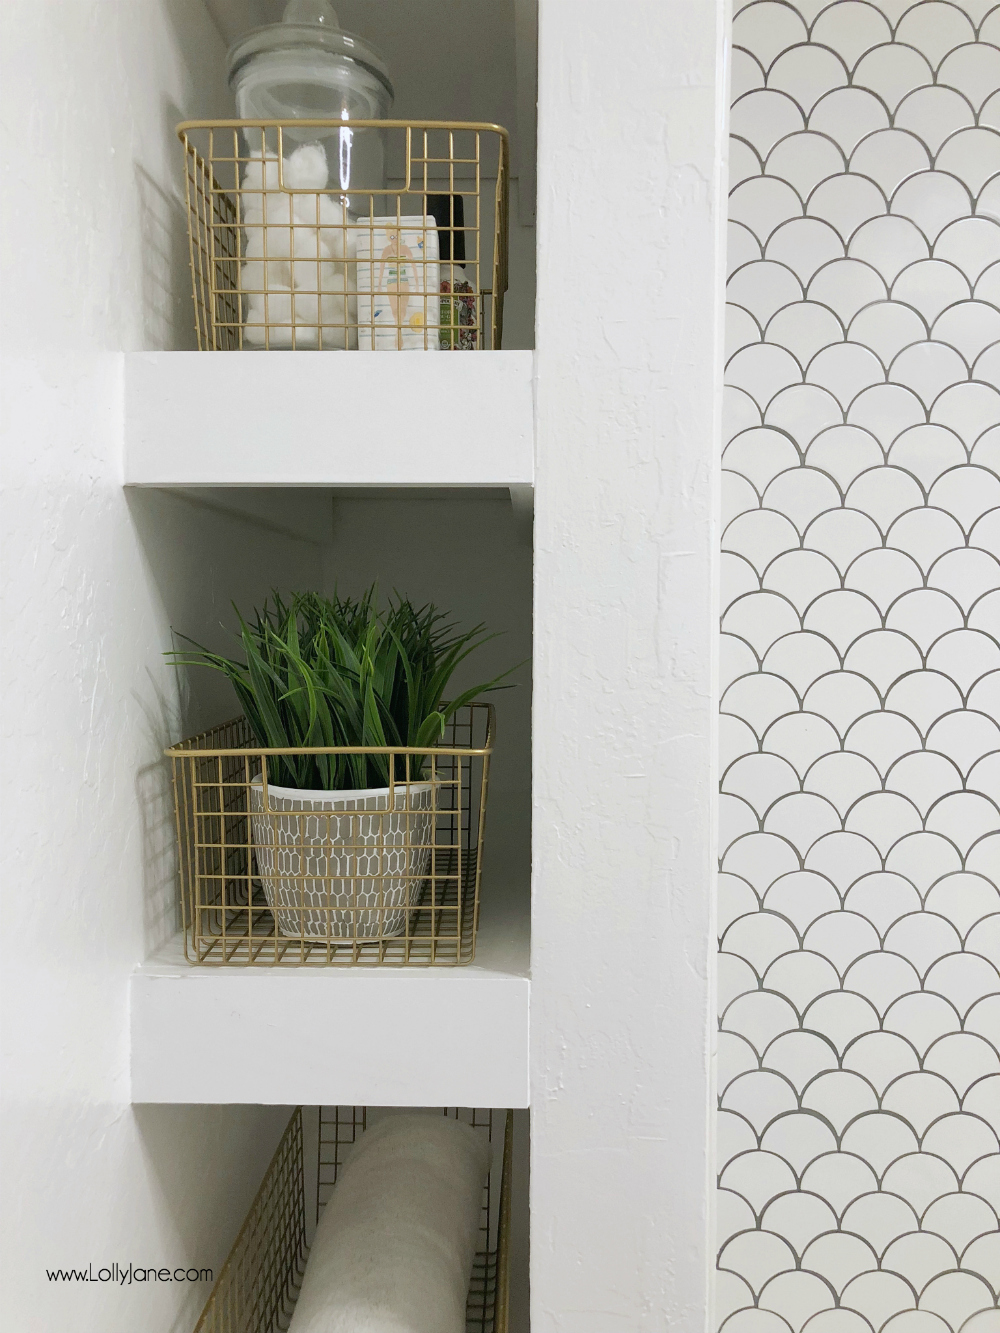 Can't decide if the DIY spray painted gold baskets are cuter OR the amazing built-in bathroom storage shelving... a FAB glam farmhouse bathroom makeover!